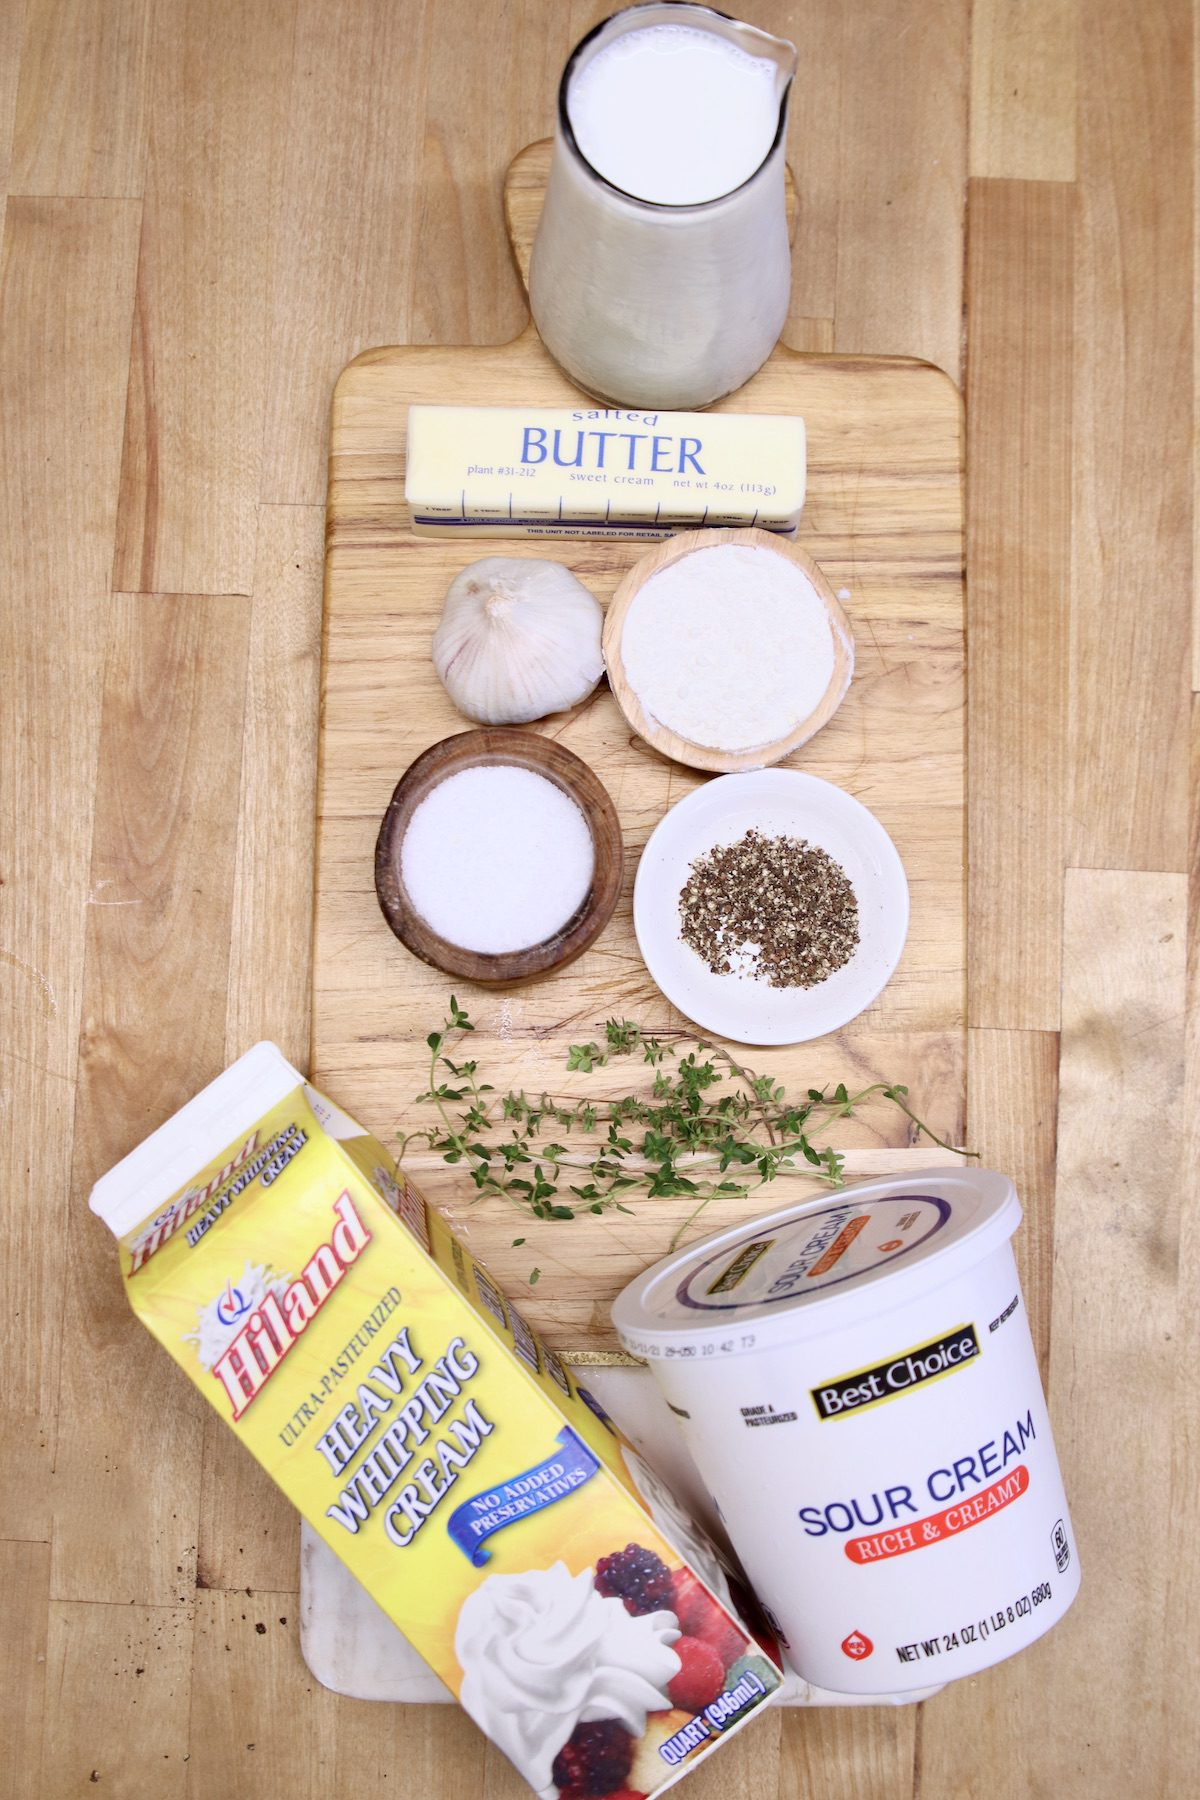 ingredients for sour cream sauce